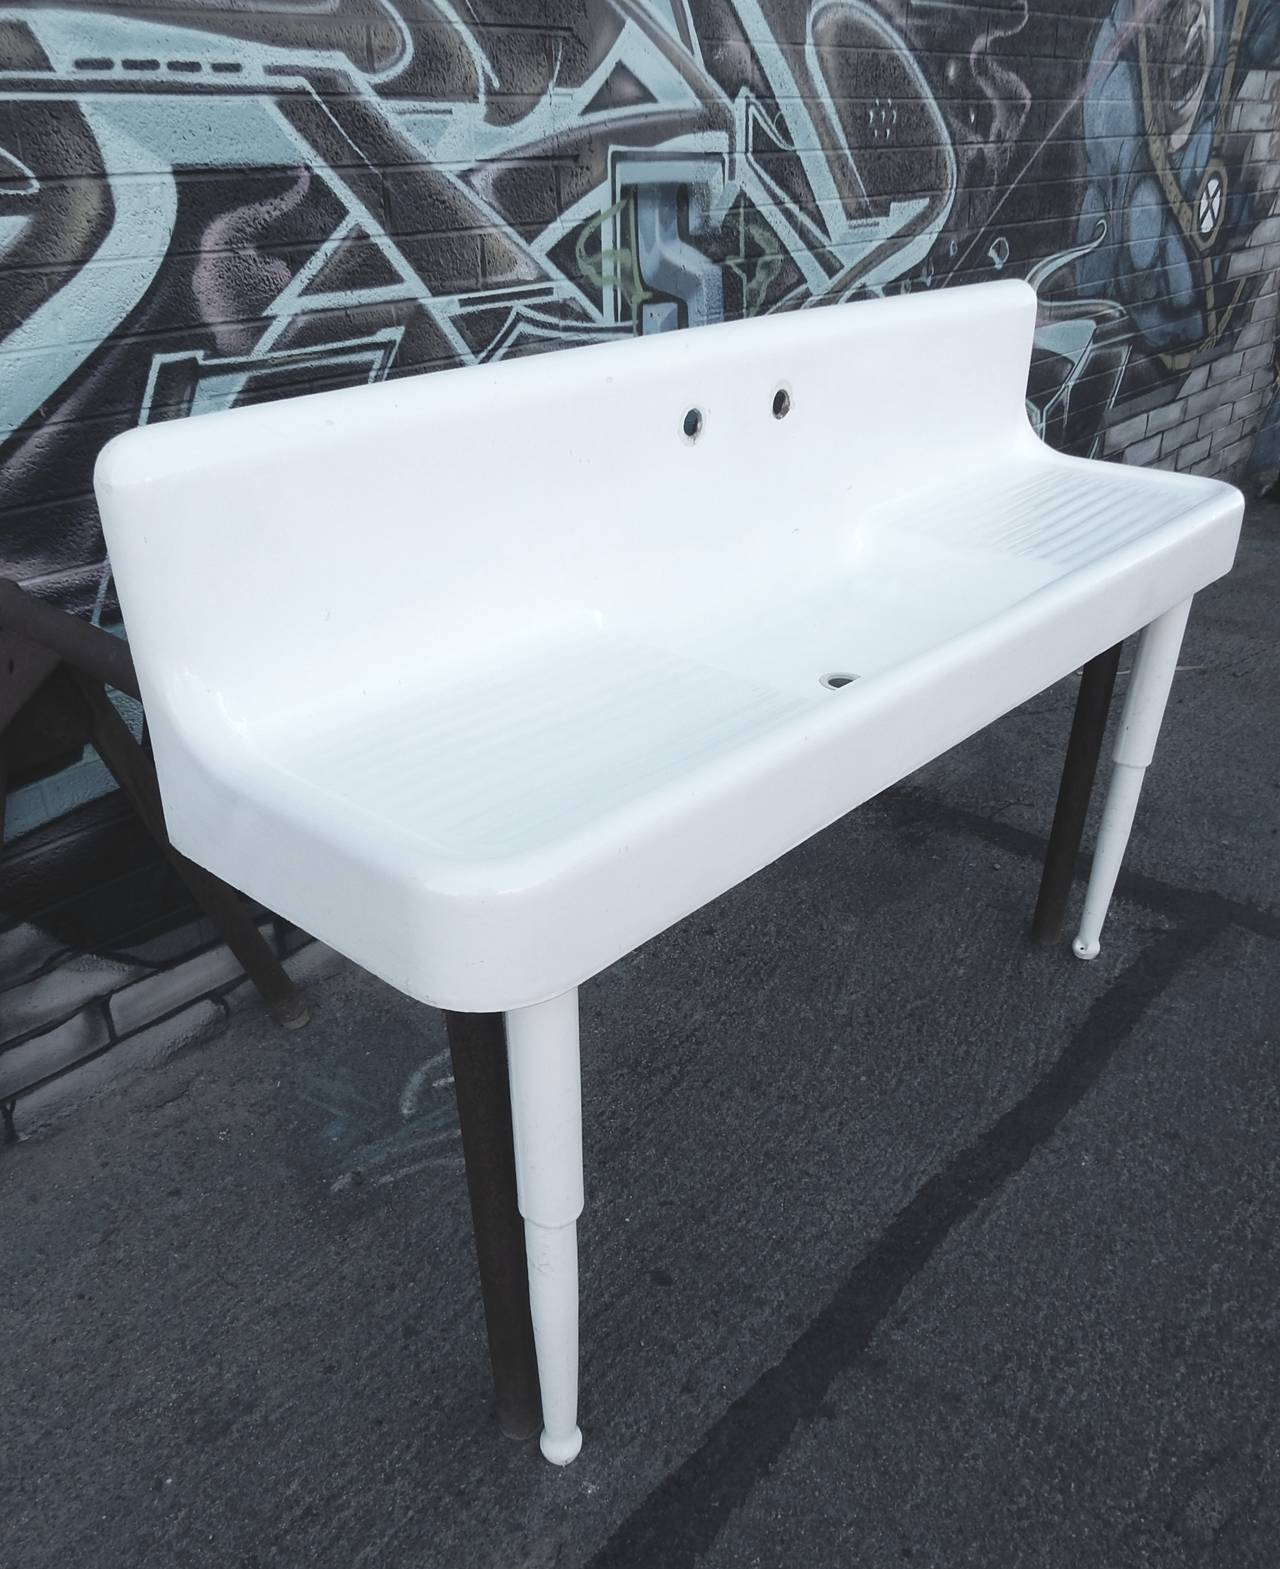 1930s Cast Iron Porcelain Double Drain Board Farmhouse Sink For Sale at 1stdibs